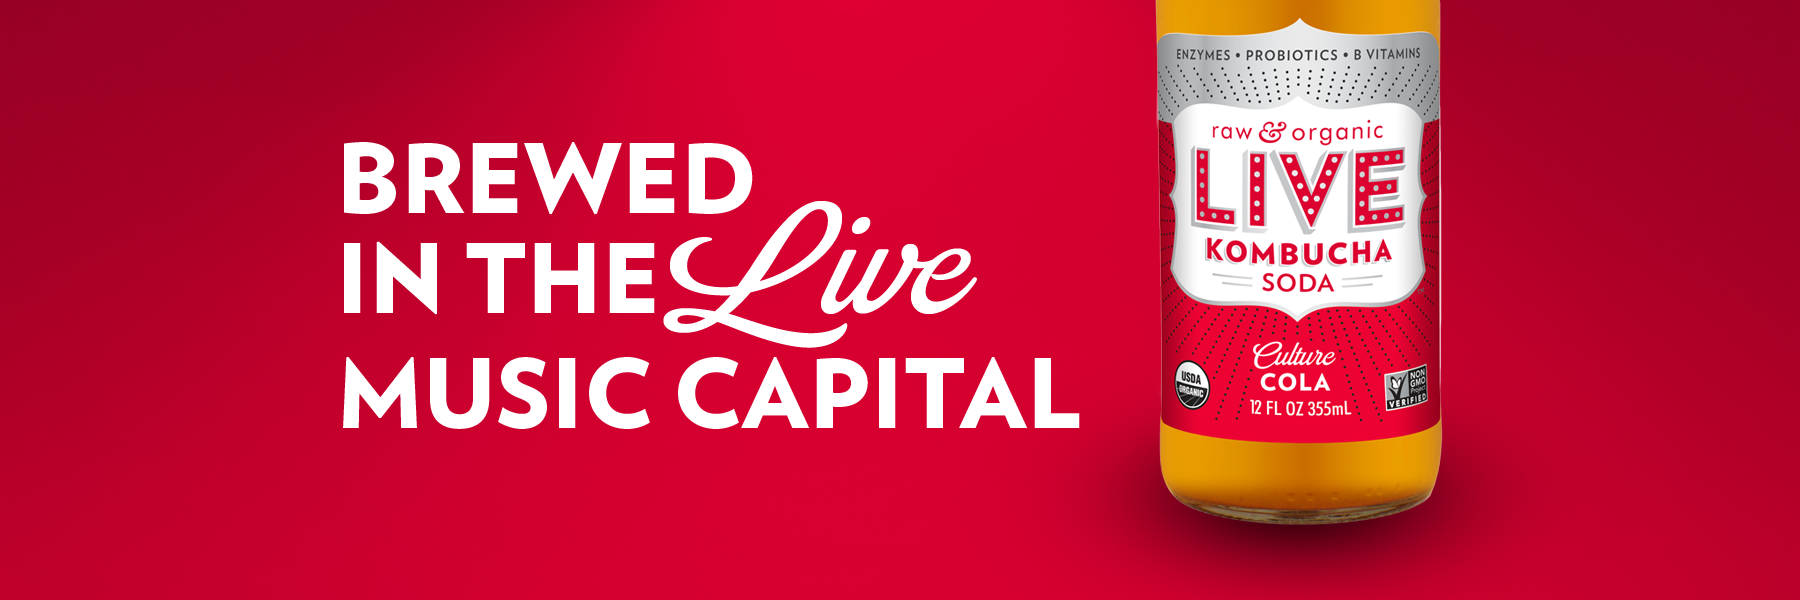 Culture Cola Live Soda Kombucha is brewed in the live music capital of the world